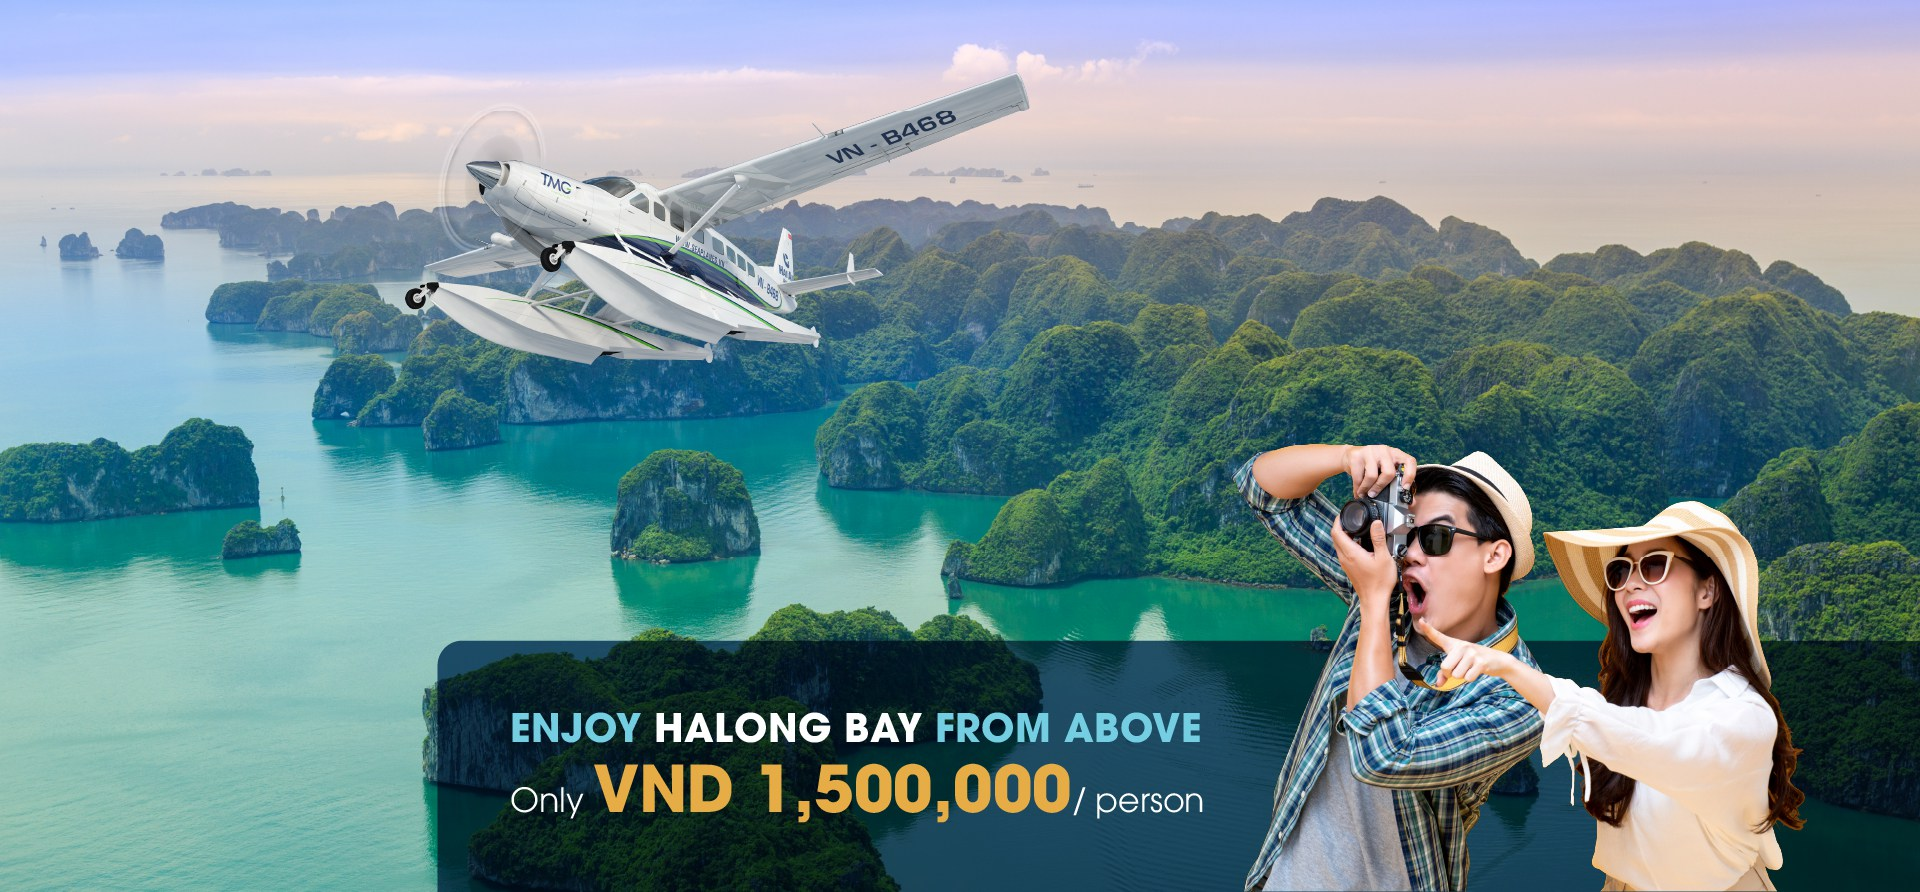 Enjoy Halong Bay from above - Only VND 1,500,000/person